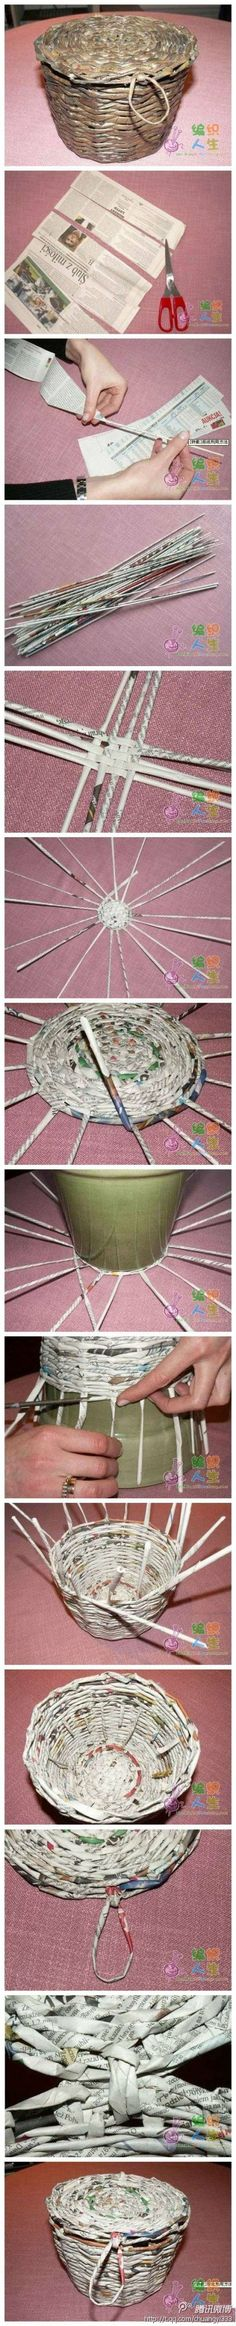 Wastepaper baskets woven with newspapers